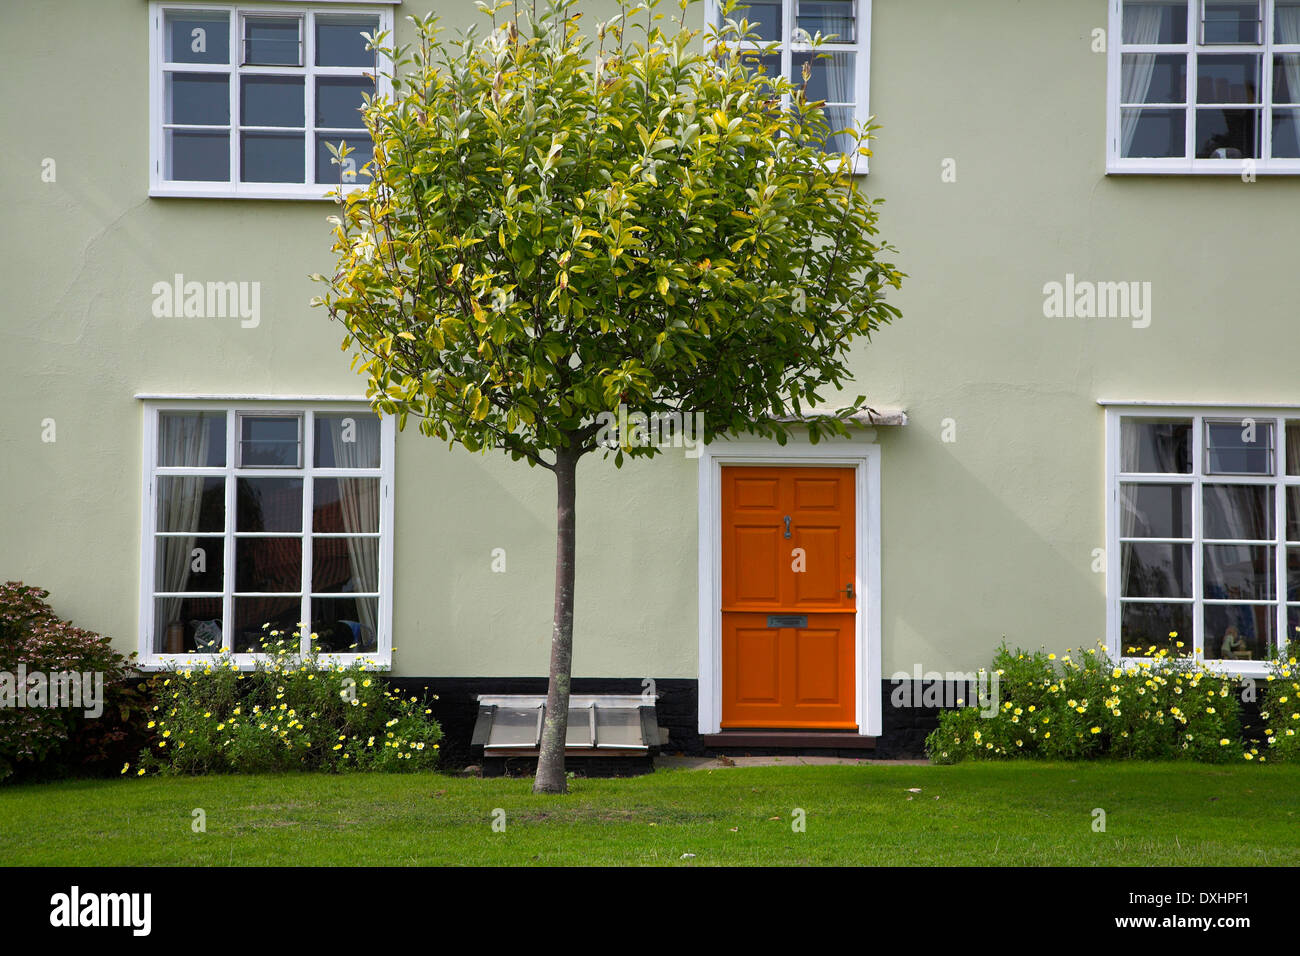 House on the village green with tree outside, Walberswick, Suffolk, England, - Stock Image